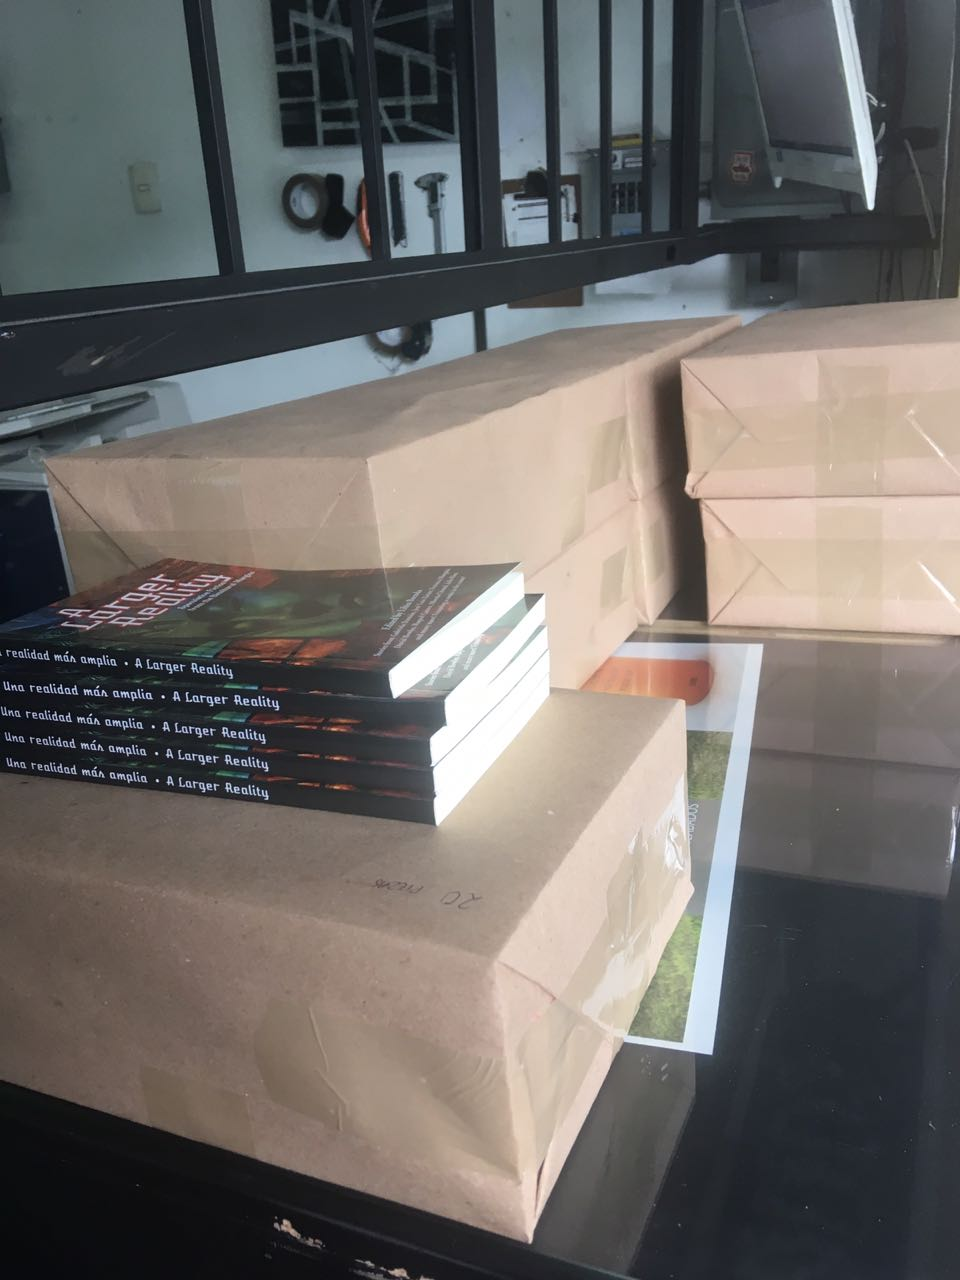 A Larger Reality  all packaged up and ready to go (Photo by Libia Brenda)